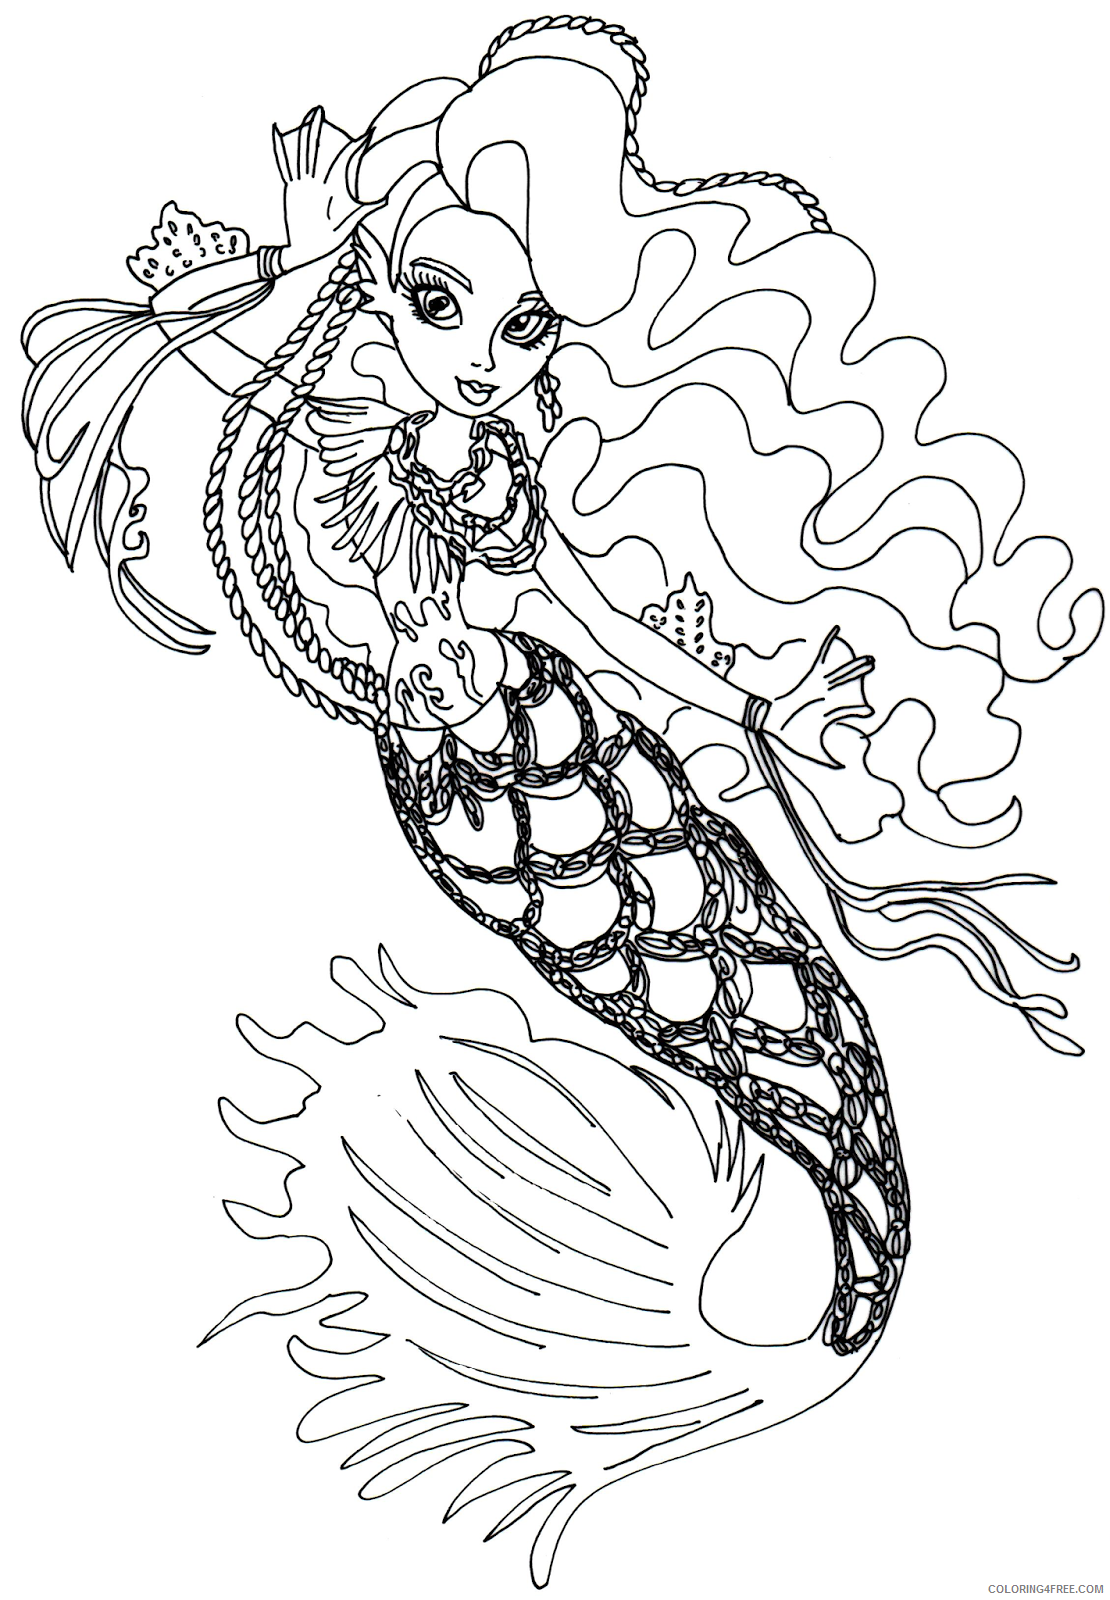 monster high sirena von boo coloring pages Coloring4free